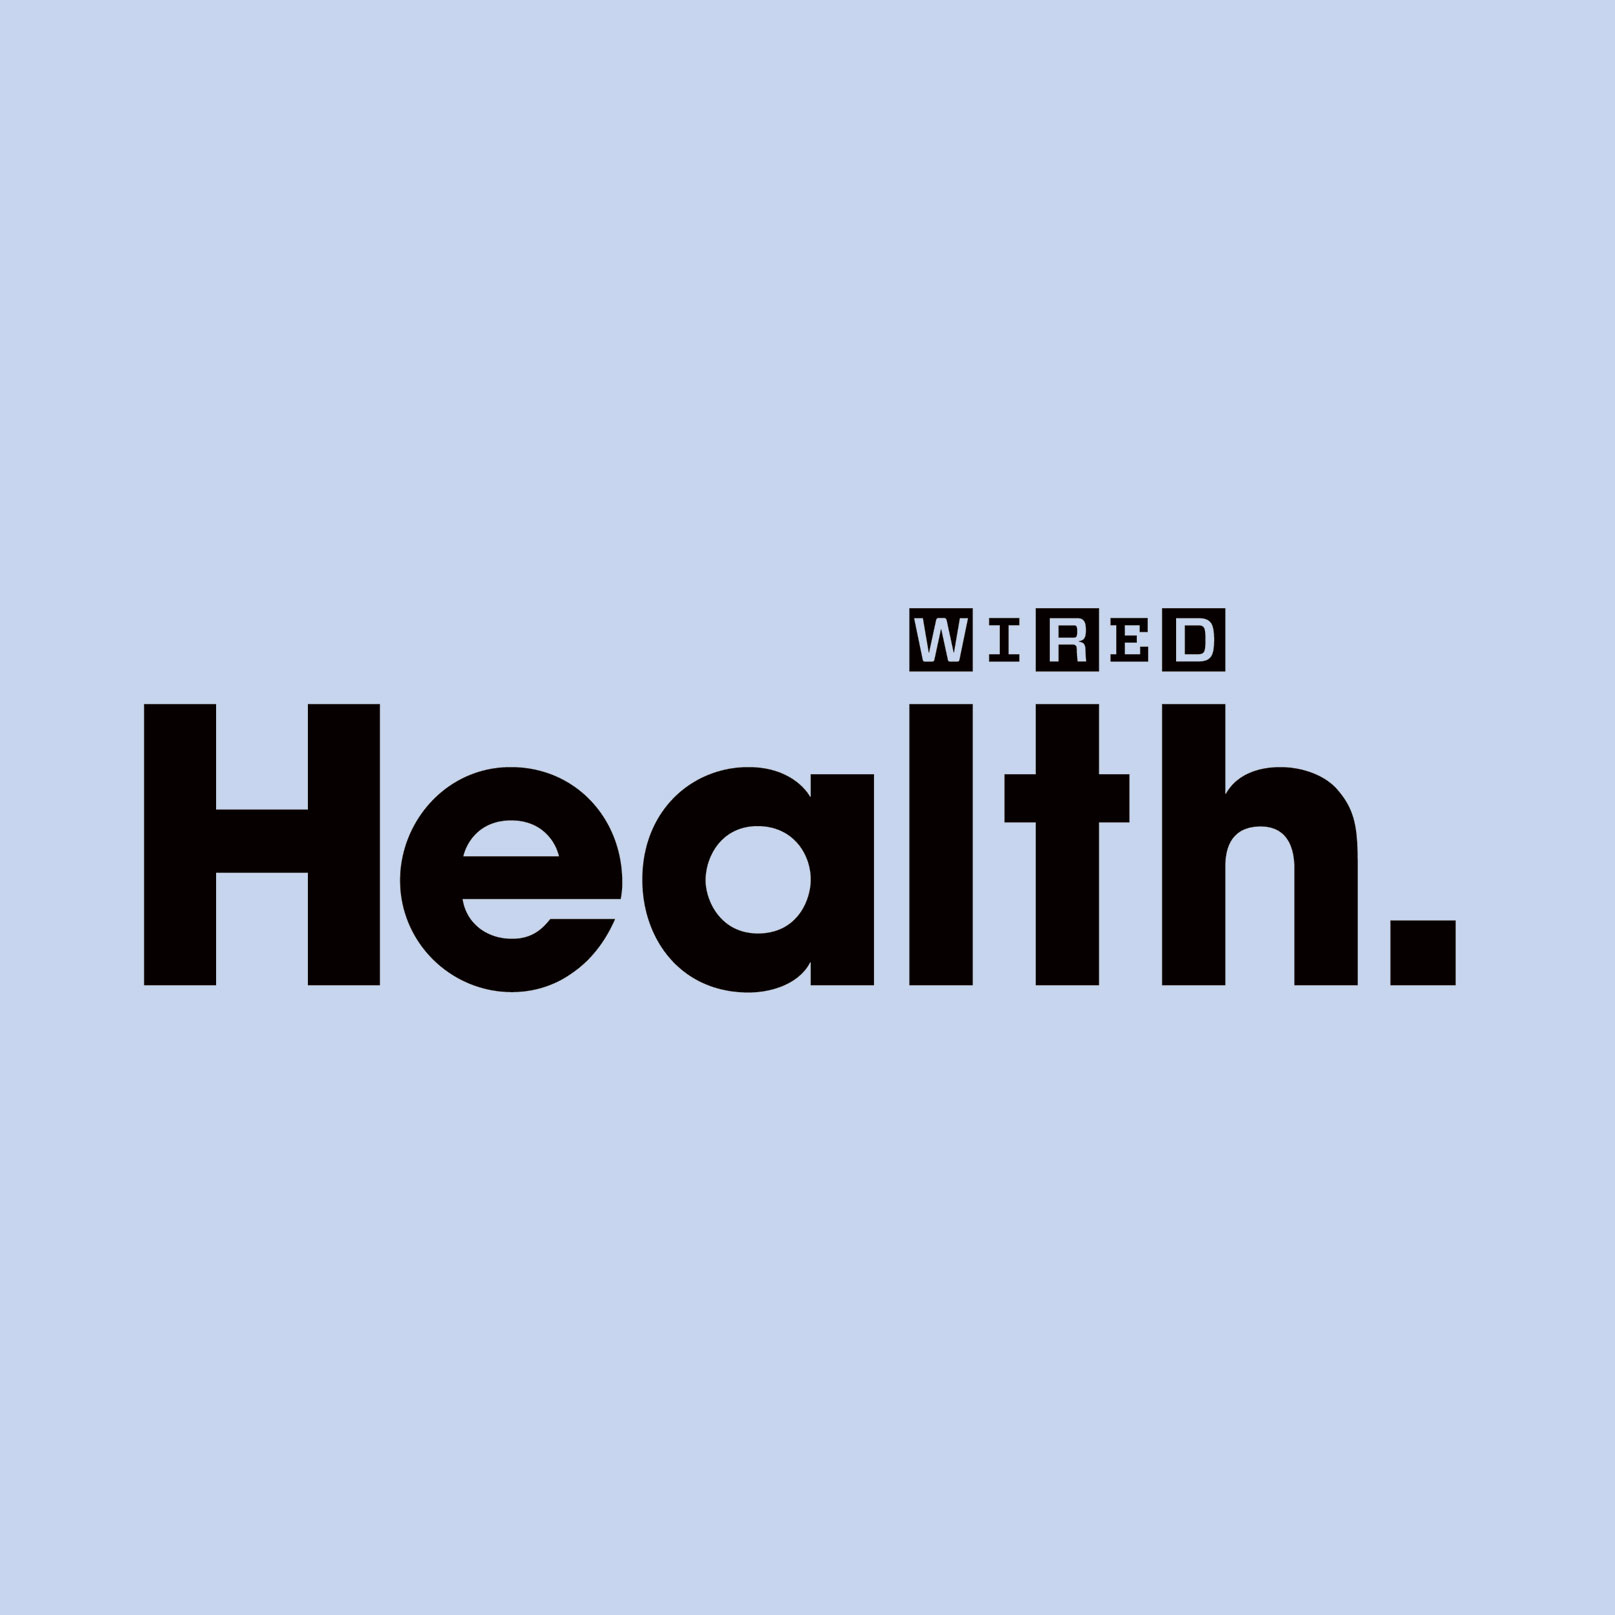 WIRED Health Square